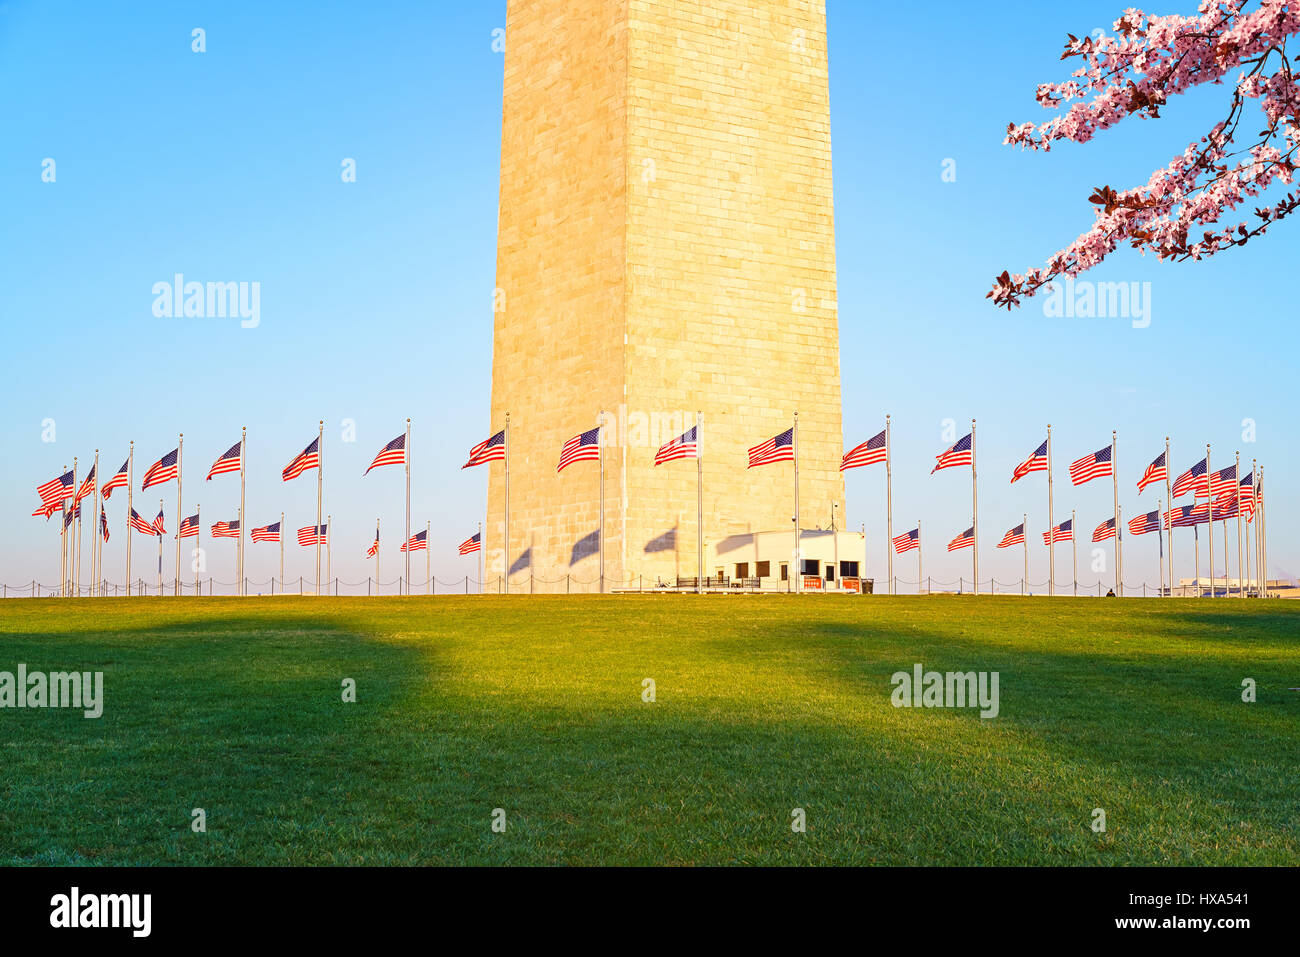 Cherry blossom near Washington Monument, USA - Stock Image